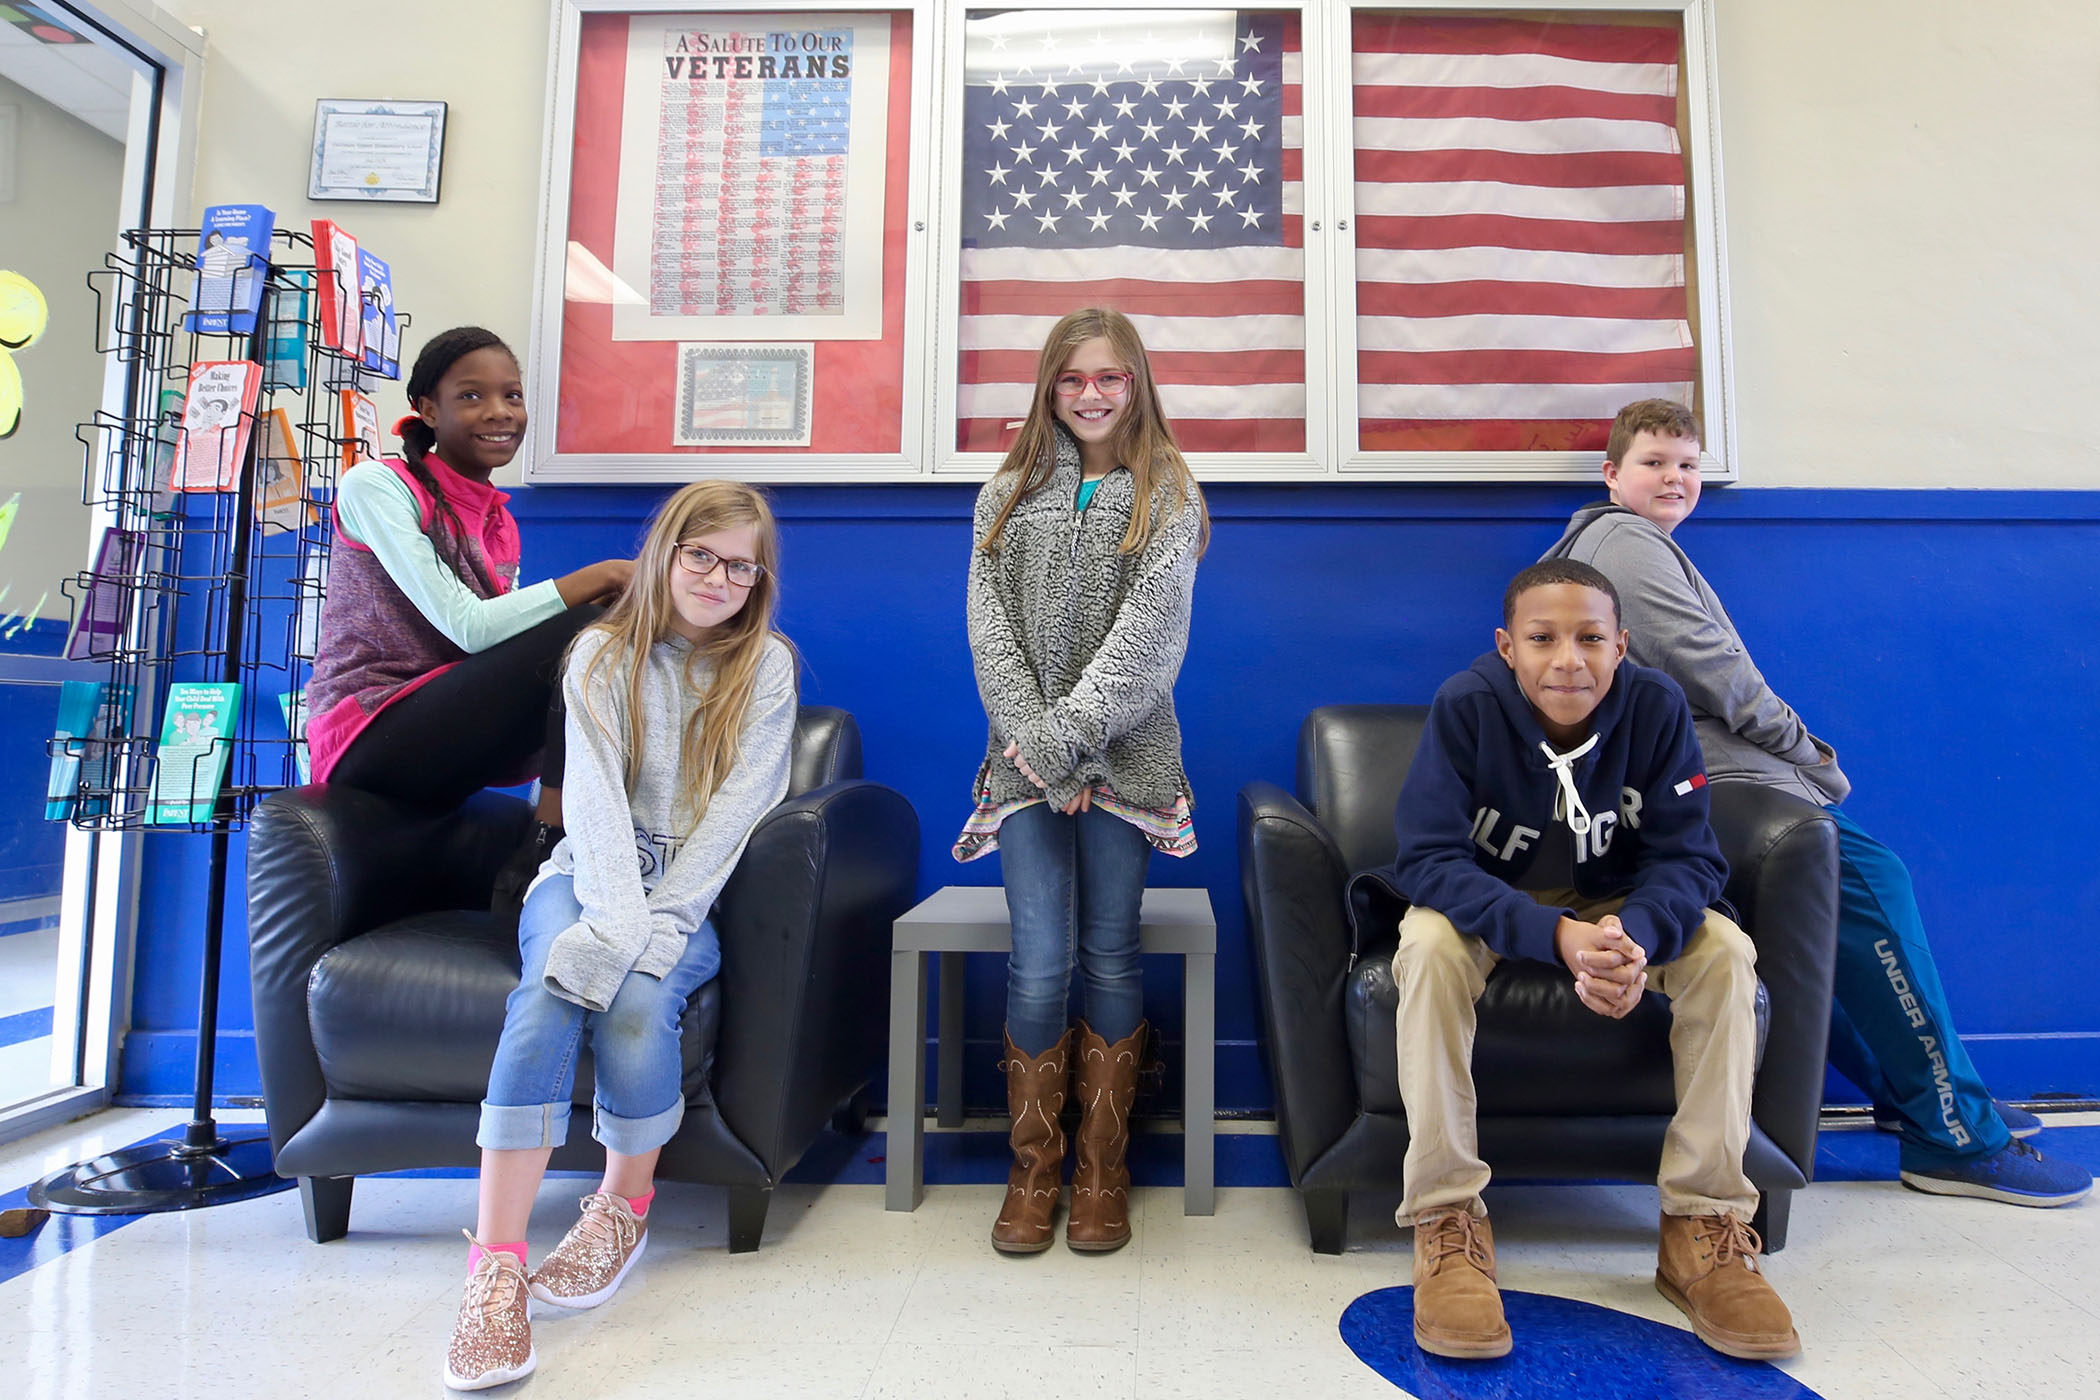 A group of QUE students are leading the school in the Pledge of Allegiance.